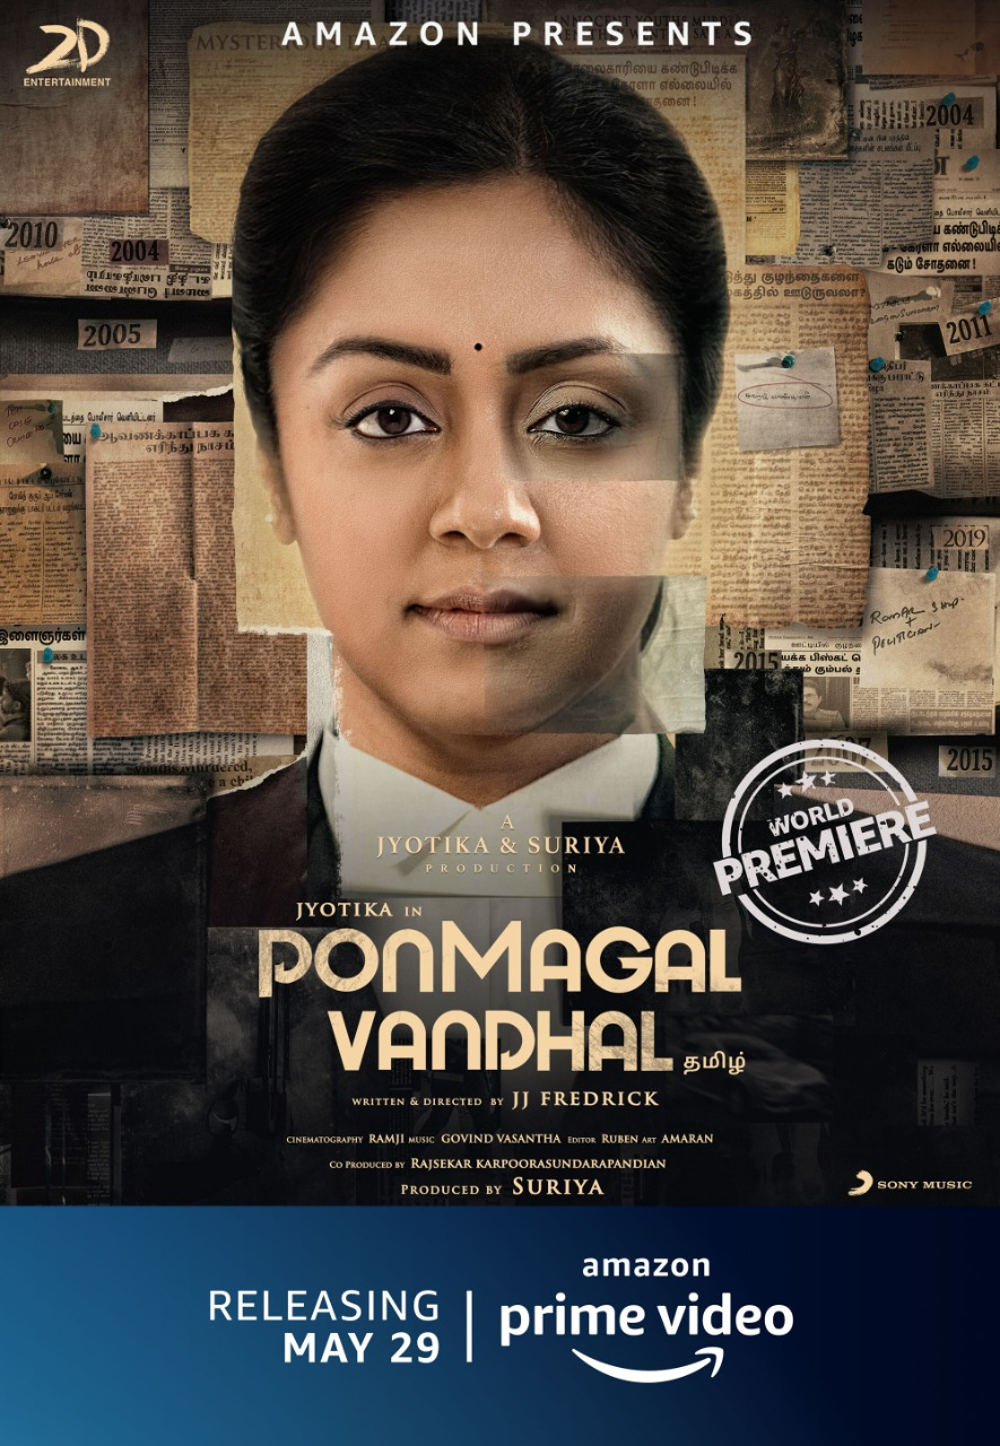 ponmagal vanthal movie ott amazon prime release date Jyothika Ponmagal Vandhal to premiere on Amazon Prime on May 29